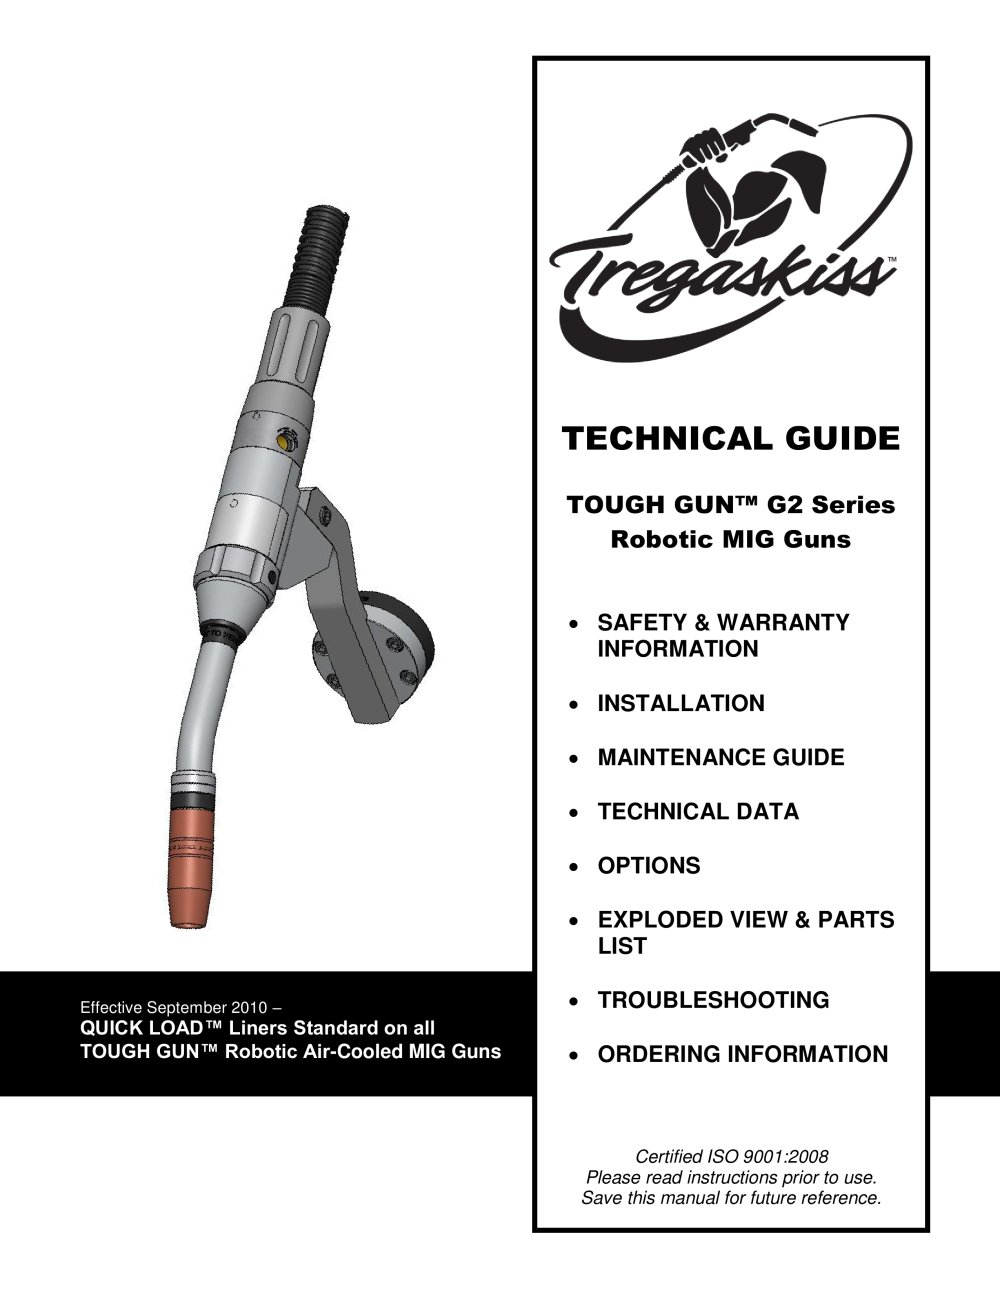 Tough gun g2 series mig guns owners manual tregaskiss pdf tough gun g2 series mig guns owners manual 1 28 pages publicscrutiny Image collections